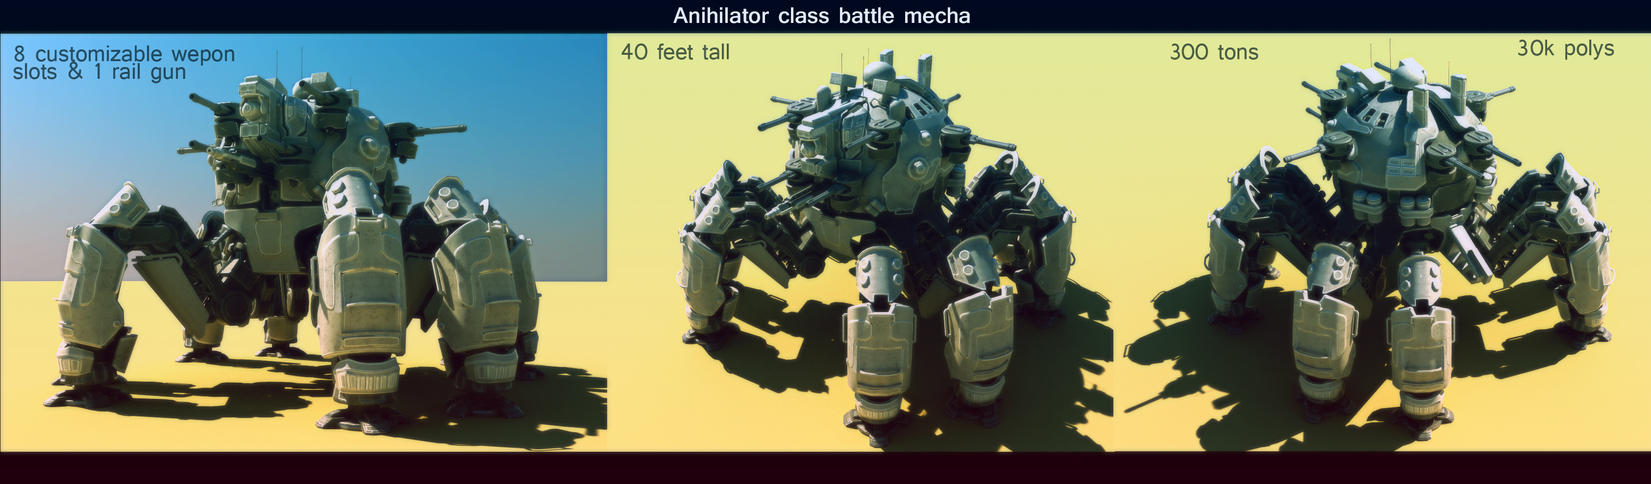 Annihilator class battle mecha WIP by Avitus12